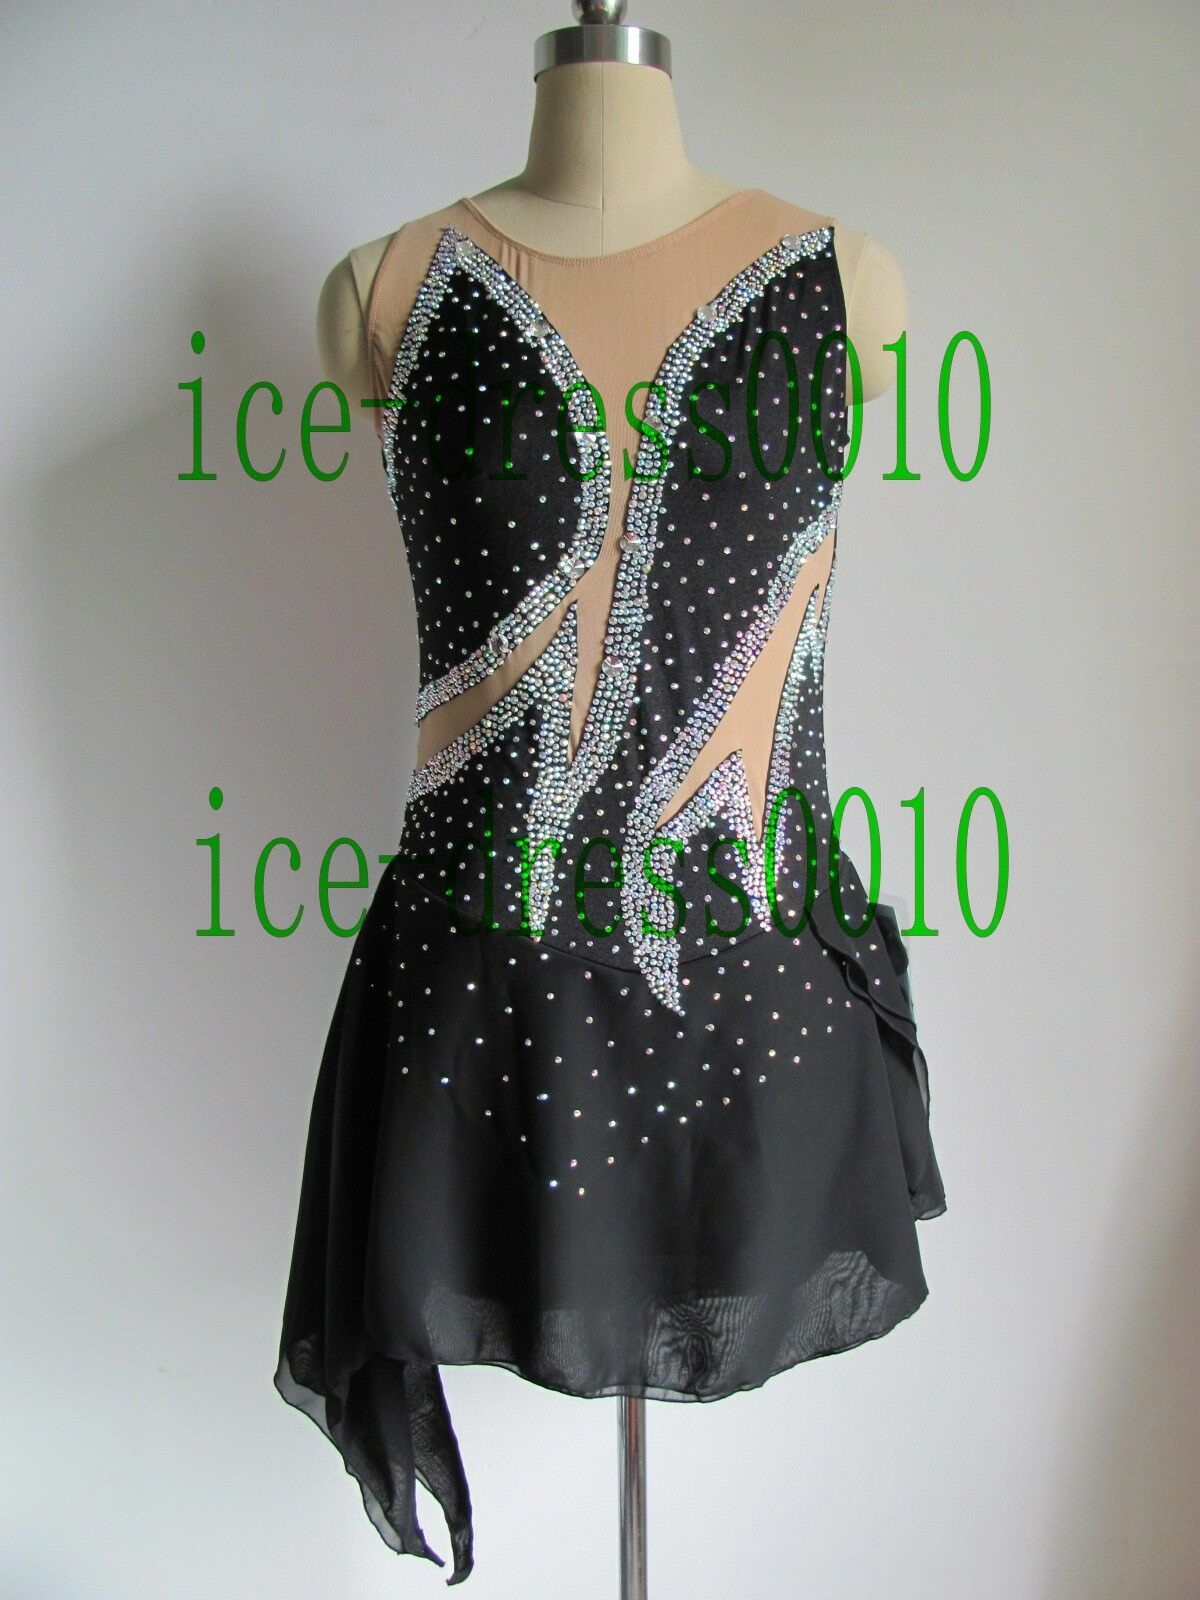 2018 new style Figure Skating Ice Skating Dress Gymnastics Costume 113-15